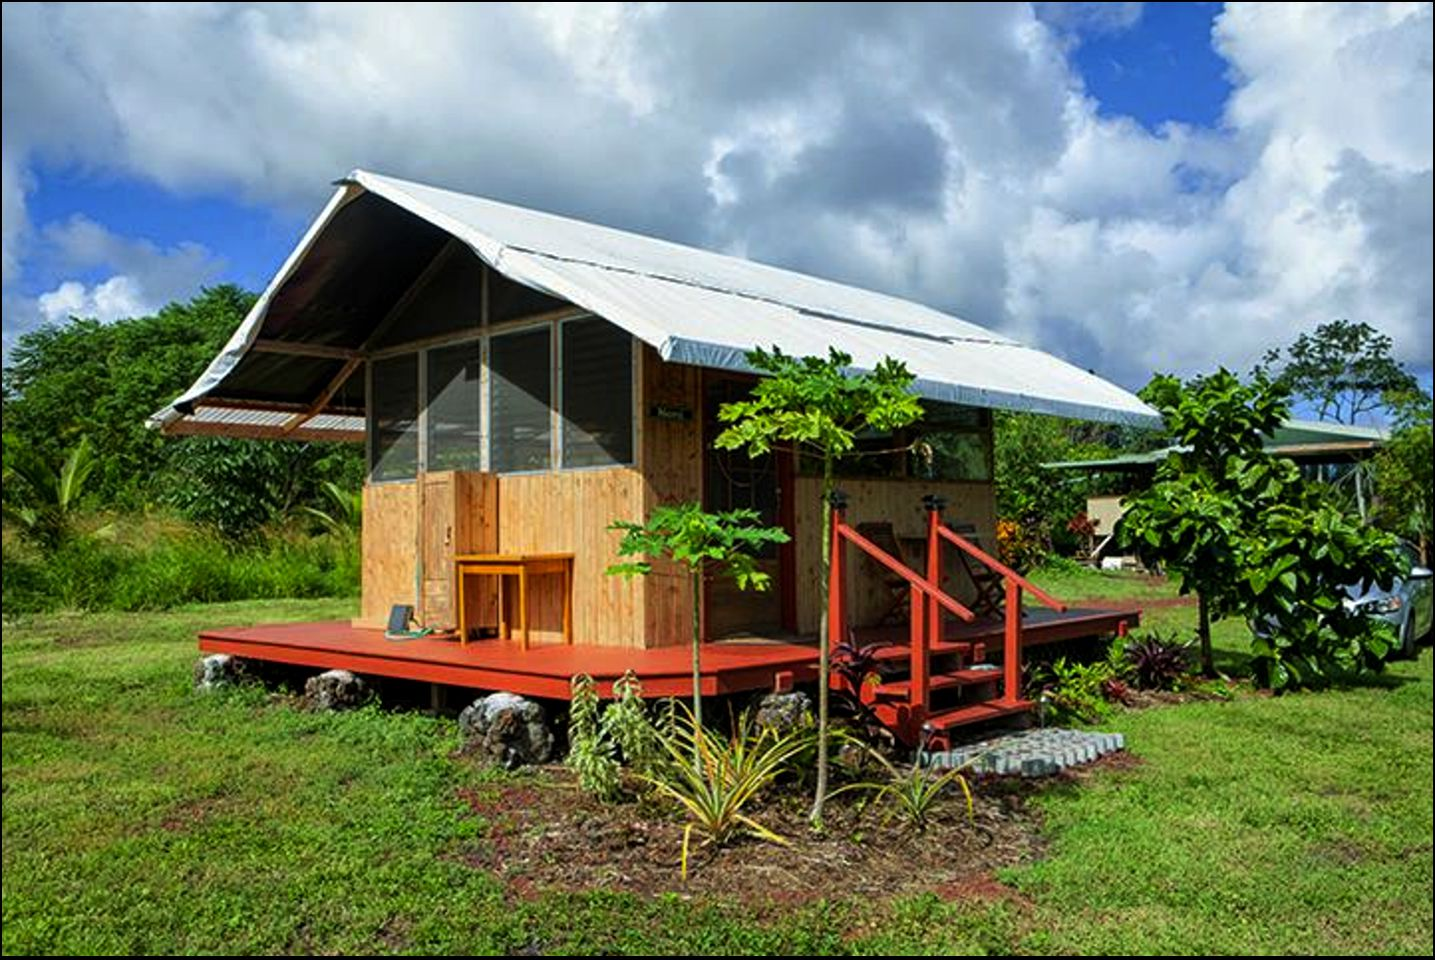 Cabins (Pahoa, Hawaii, United States)